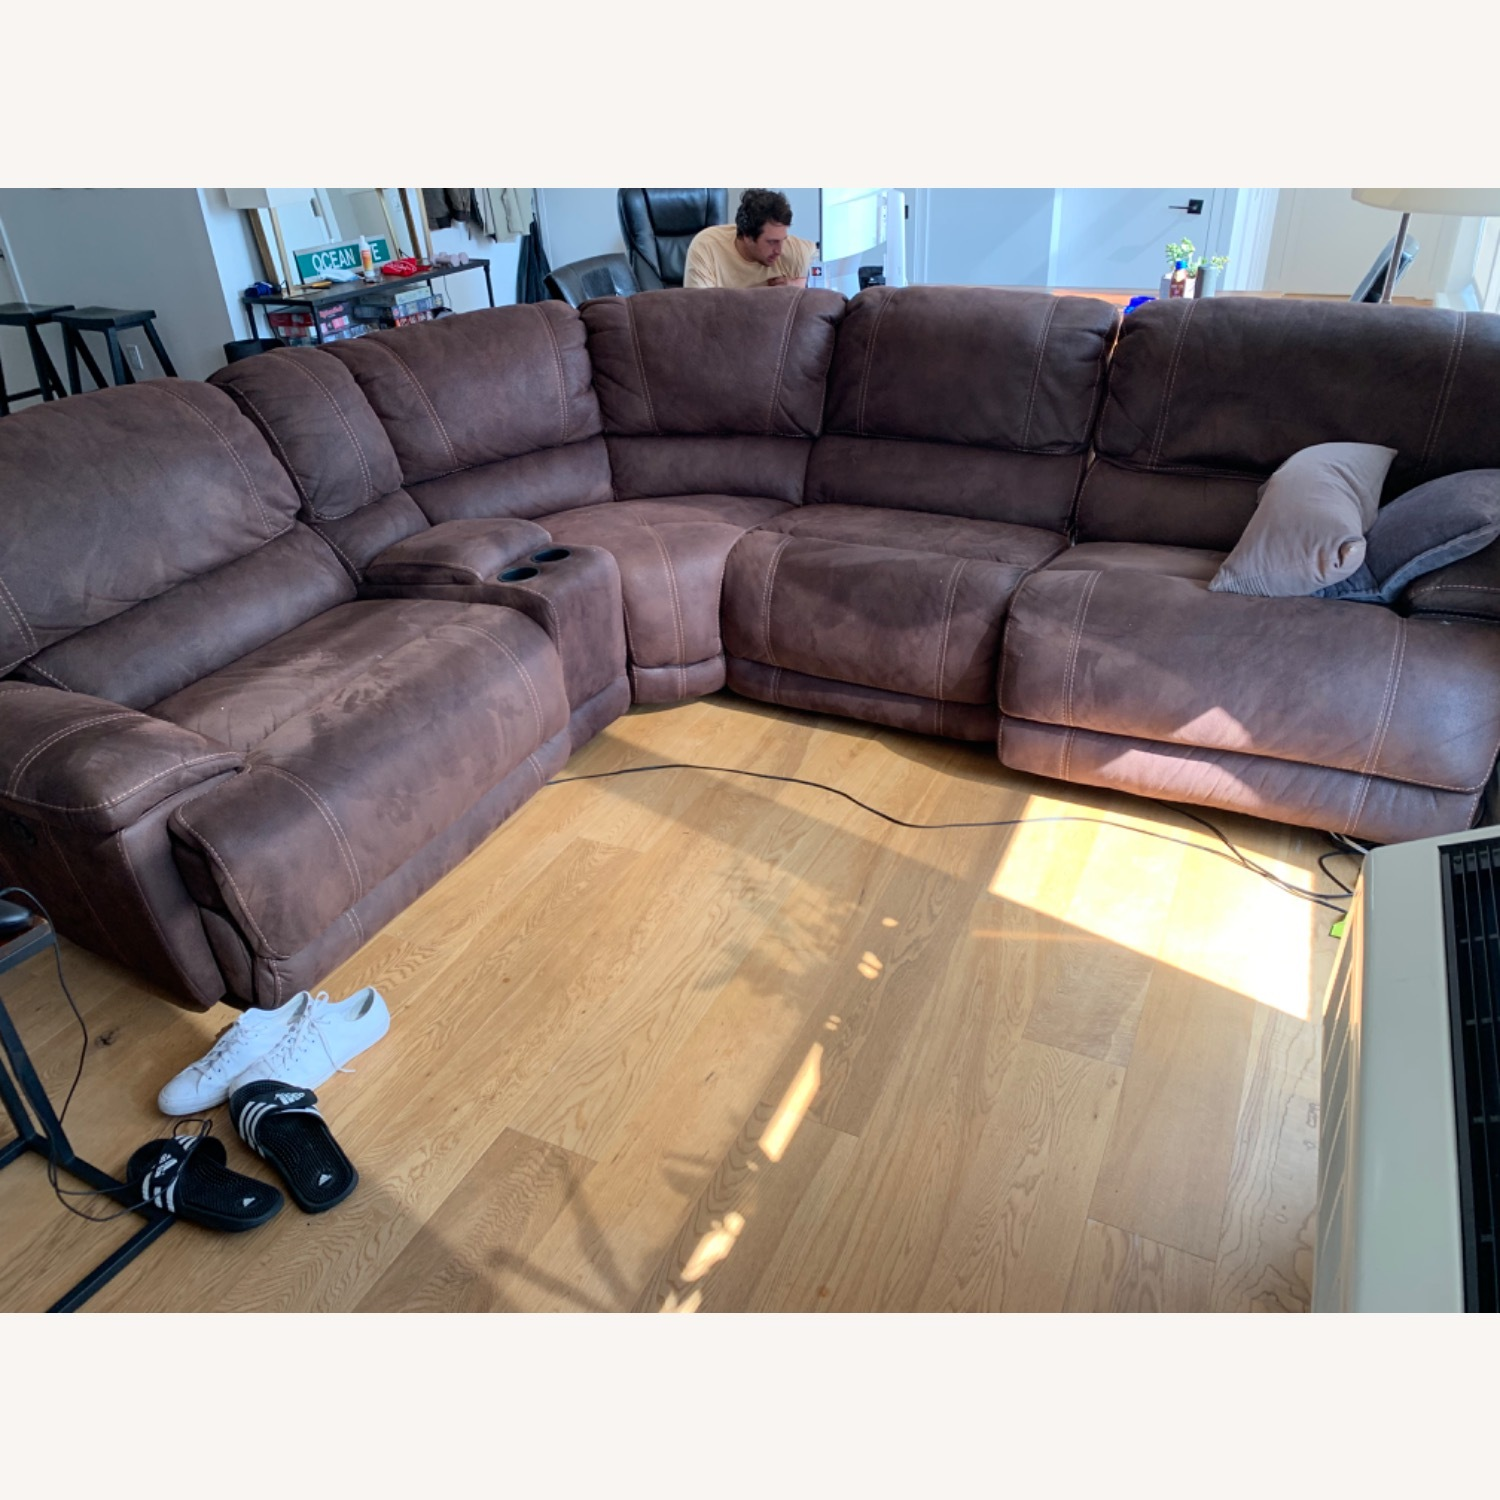 Pottery Barn Brown Leather 5 Piece Sectional - image-2